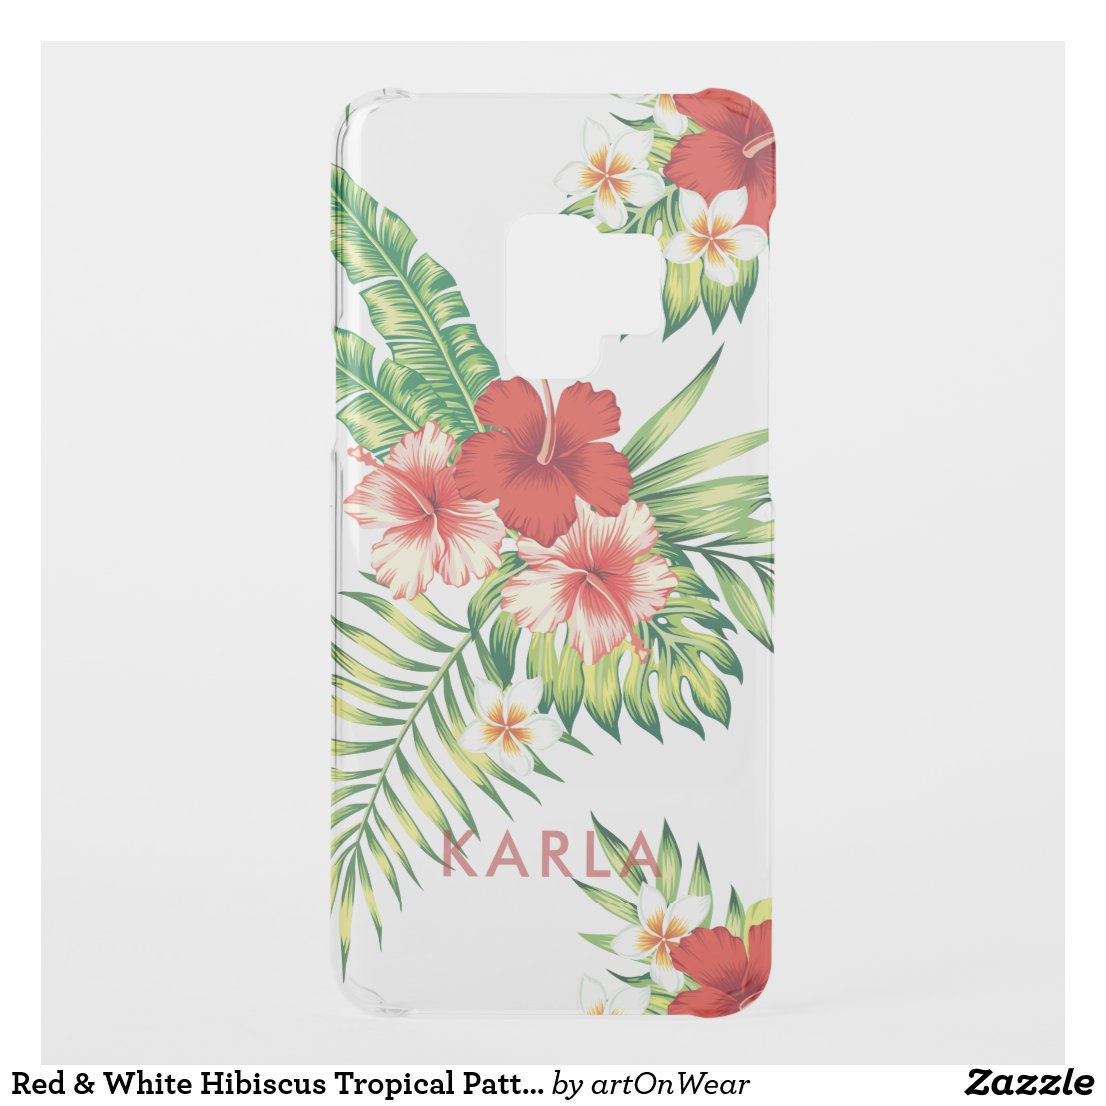 Red & White Hibiscus Tropical Pattern